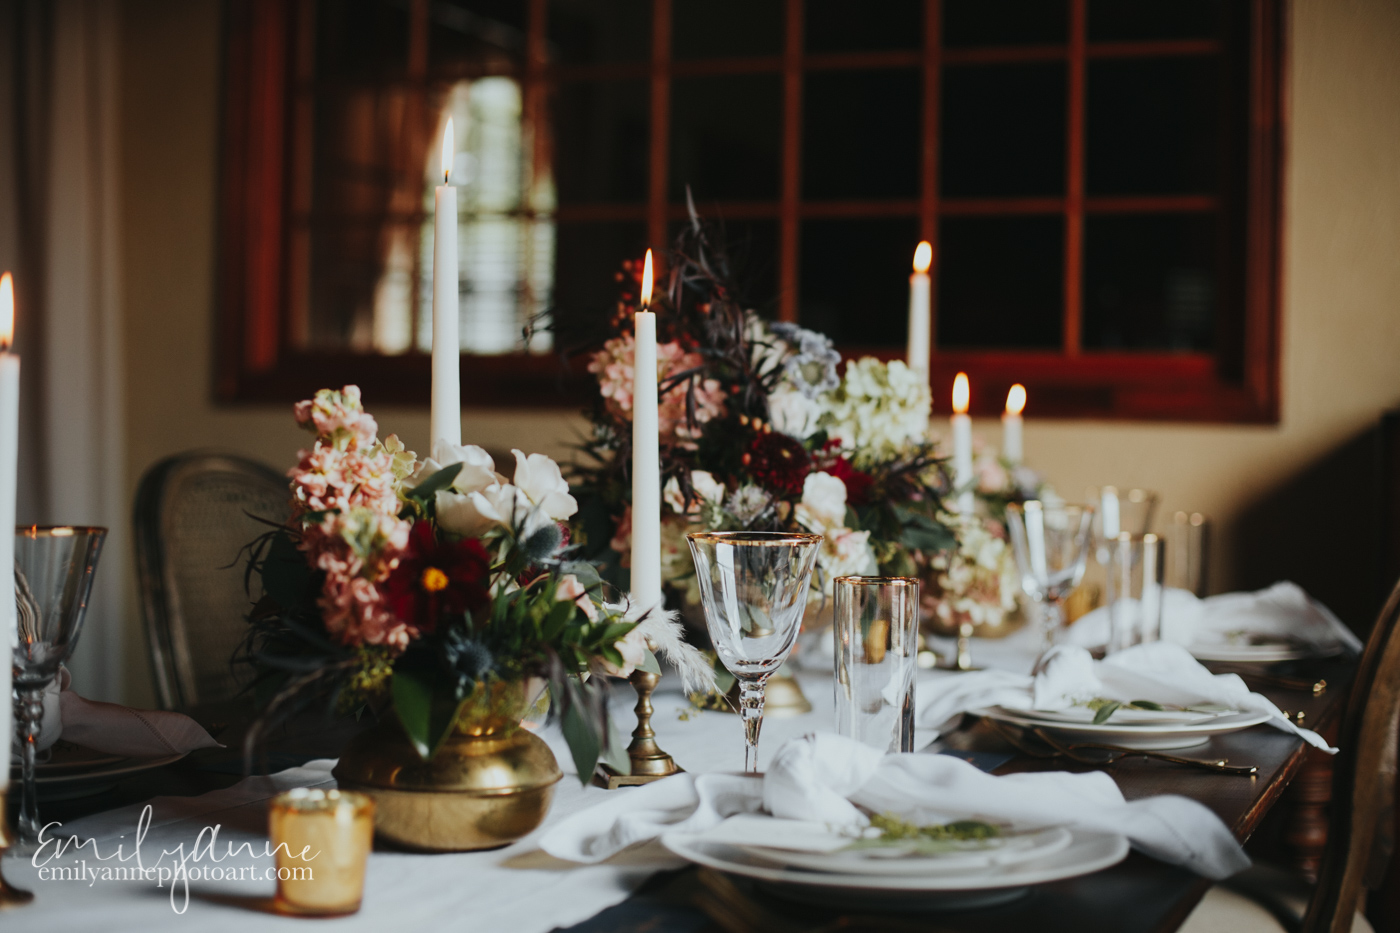 feast for a king gorgeous table set for wedding elopement foundry events Nashville tn by travel/elopement photographer Emily Anne